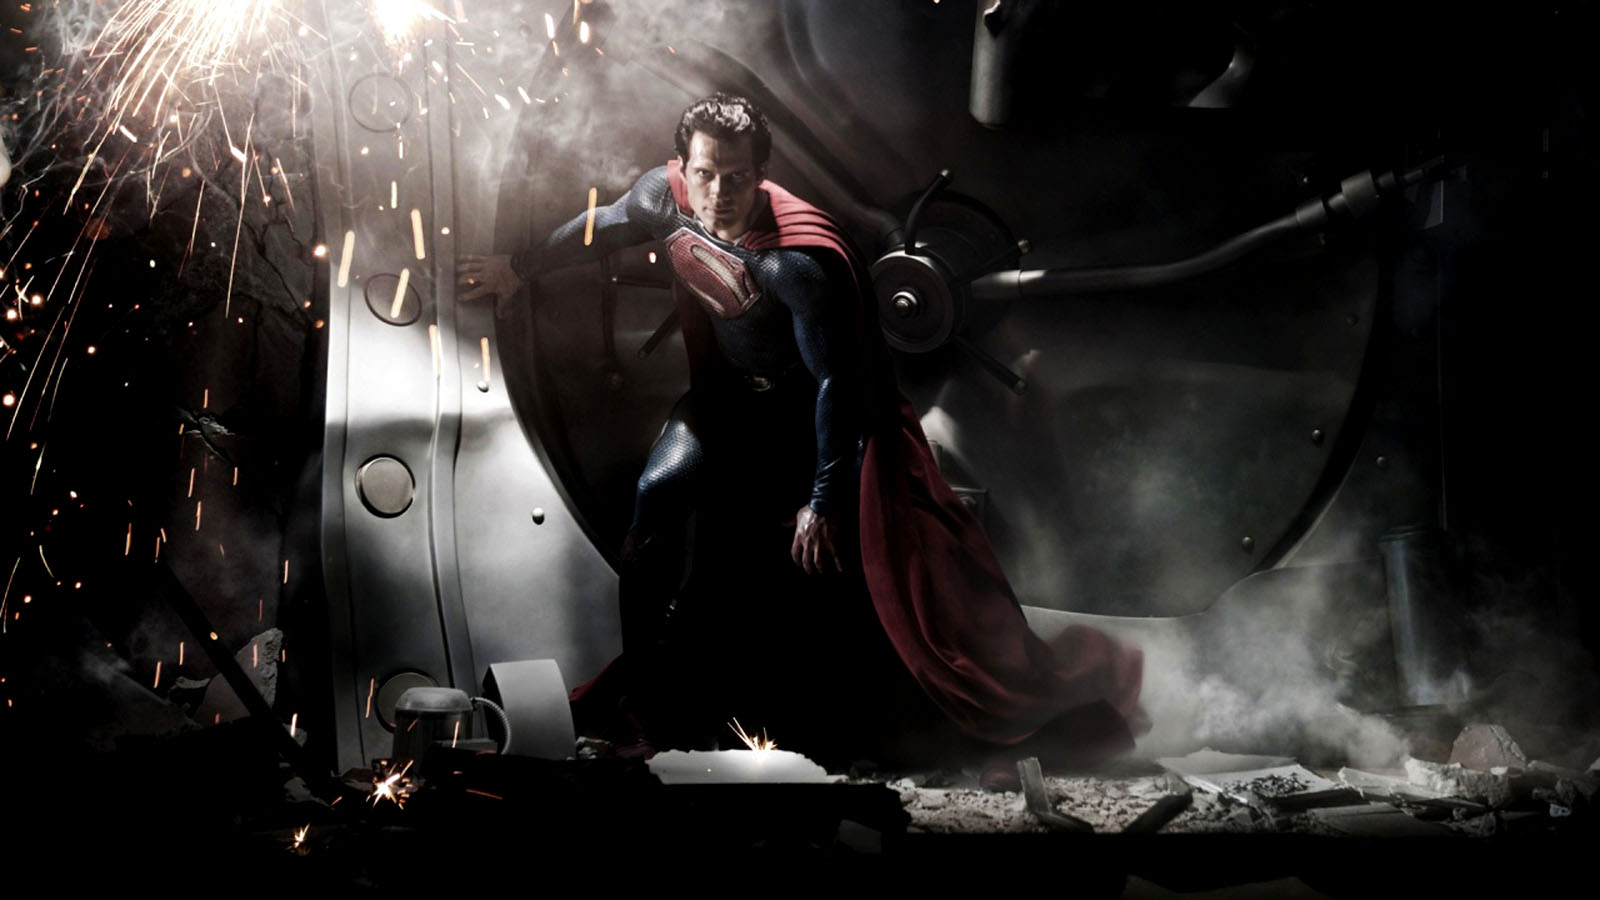 Man of Steel HD Poster WallpapersHigh Resolution Backgrounds for your 1600x900